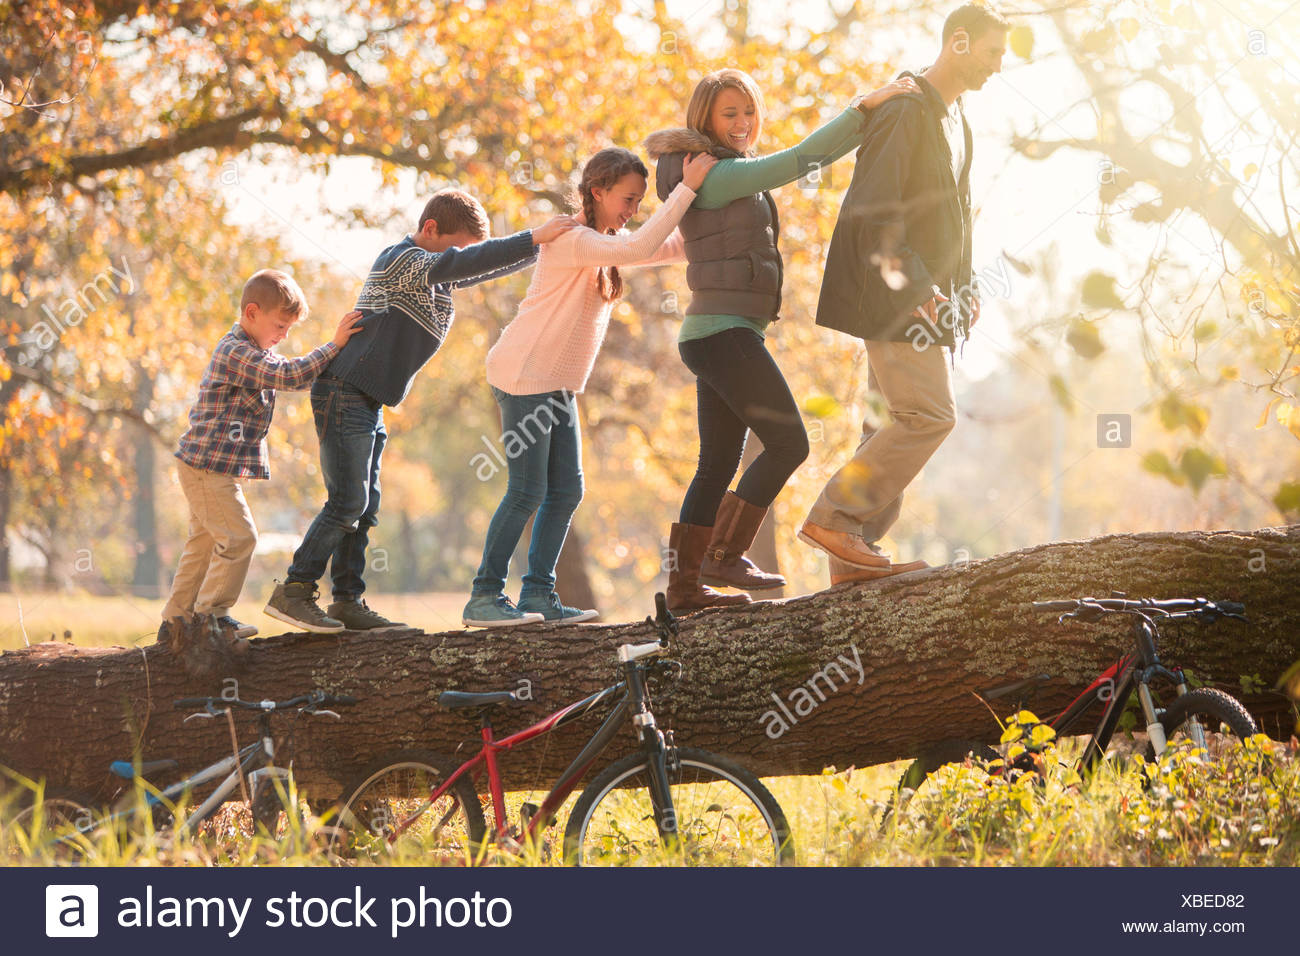 Family walking in a row on fallen log near bicycles - Stock Image